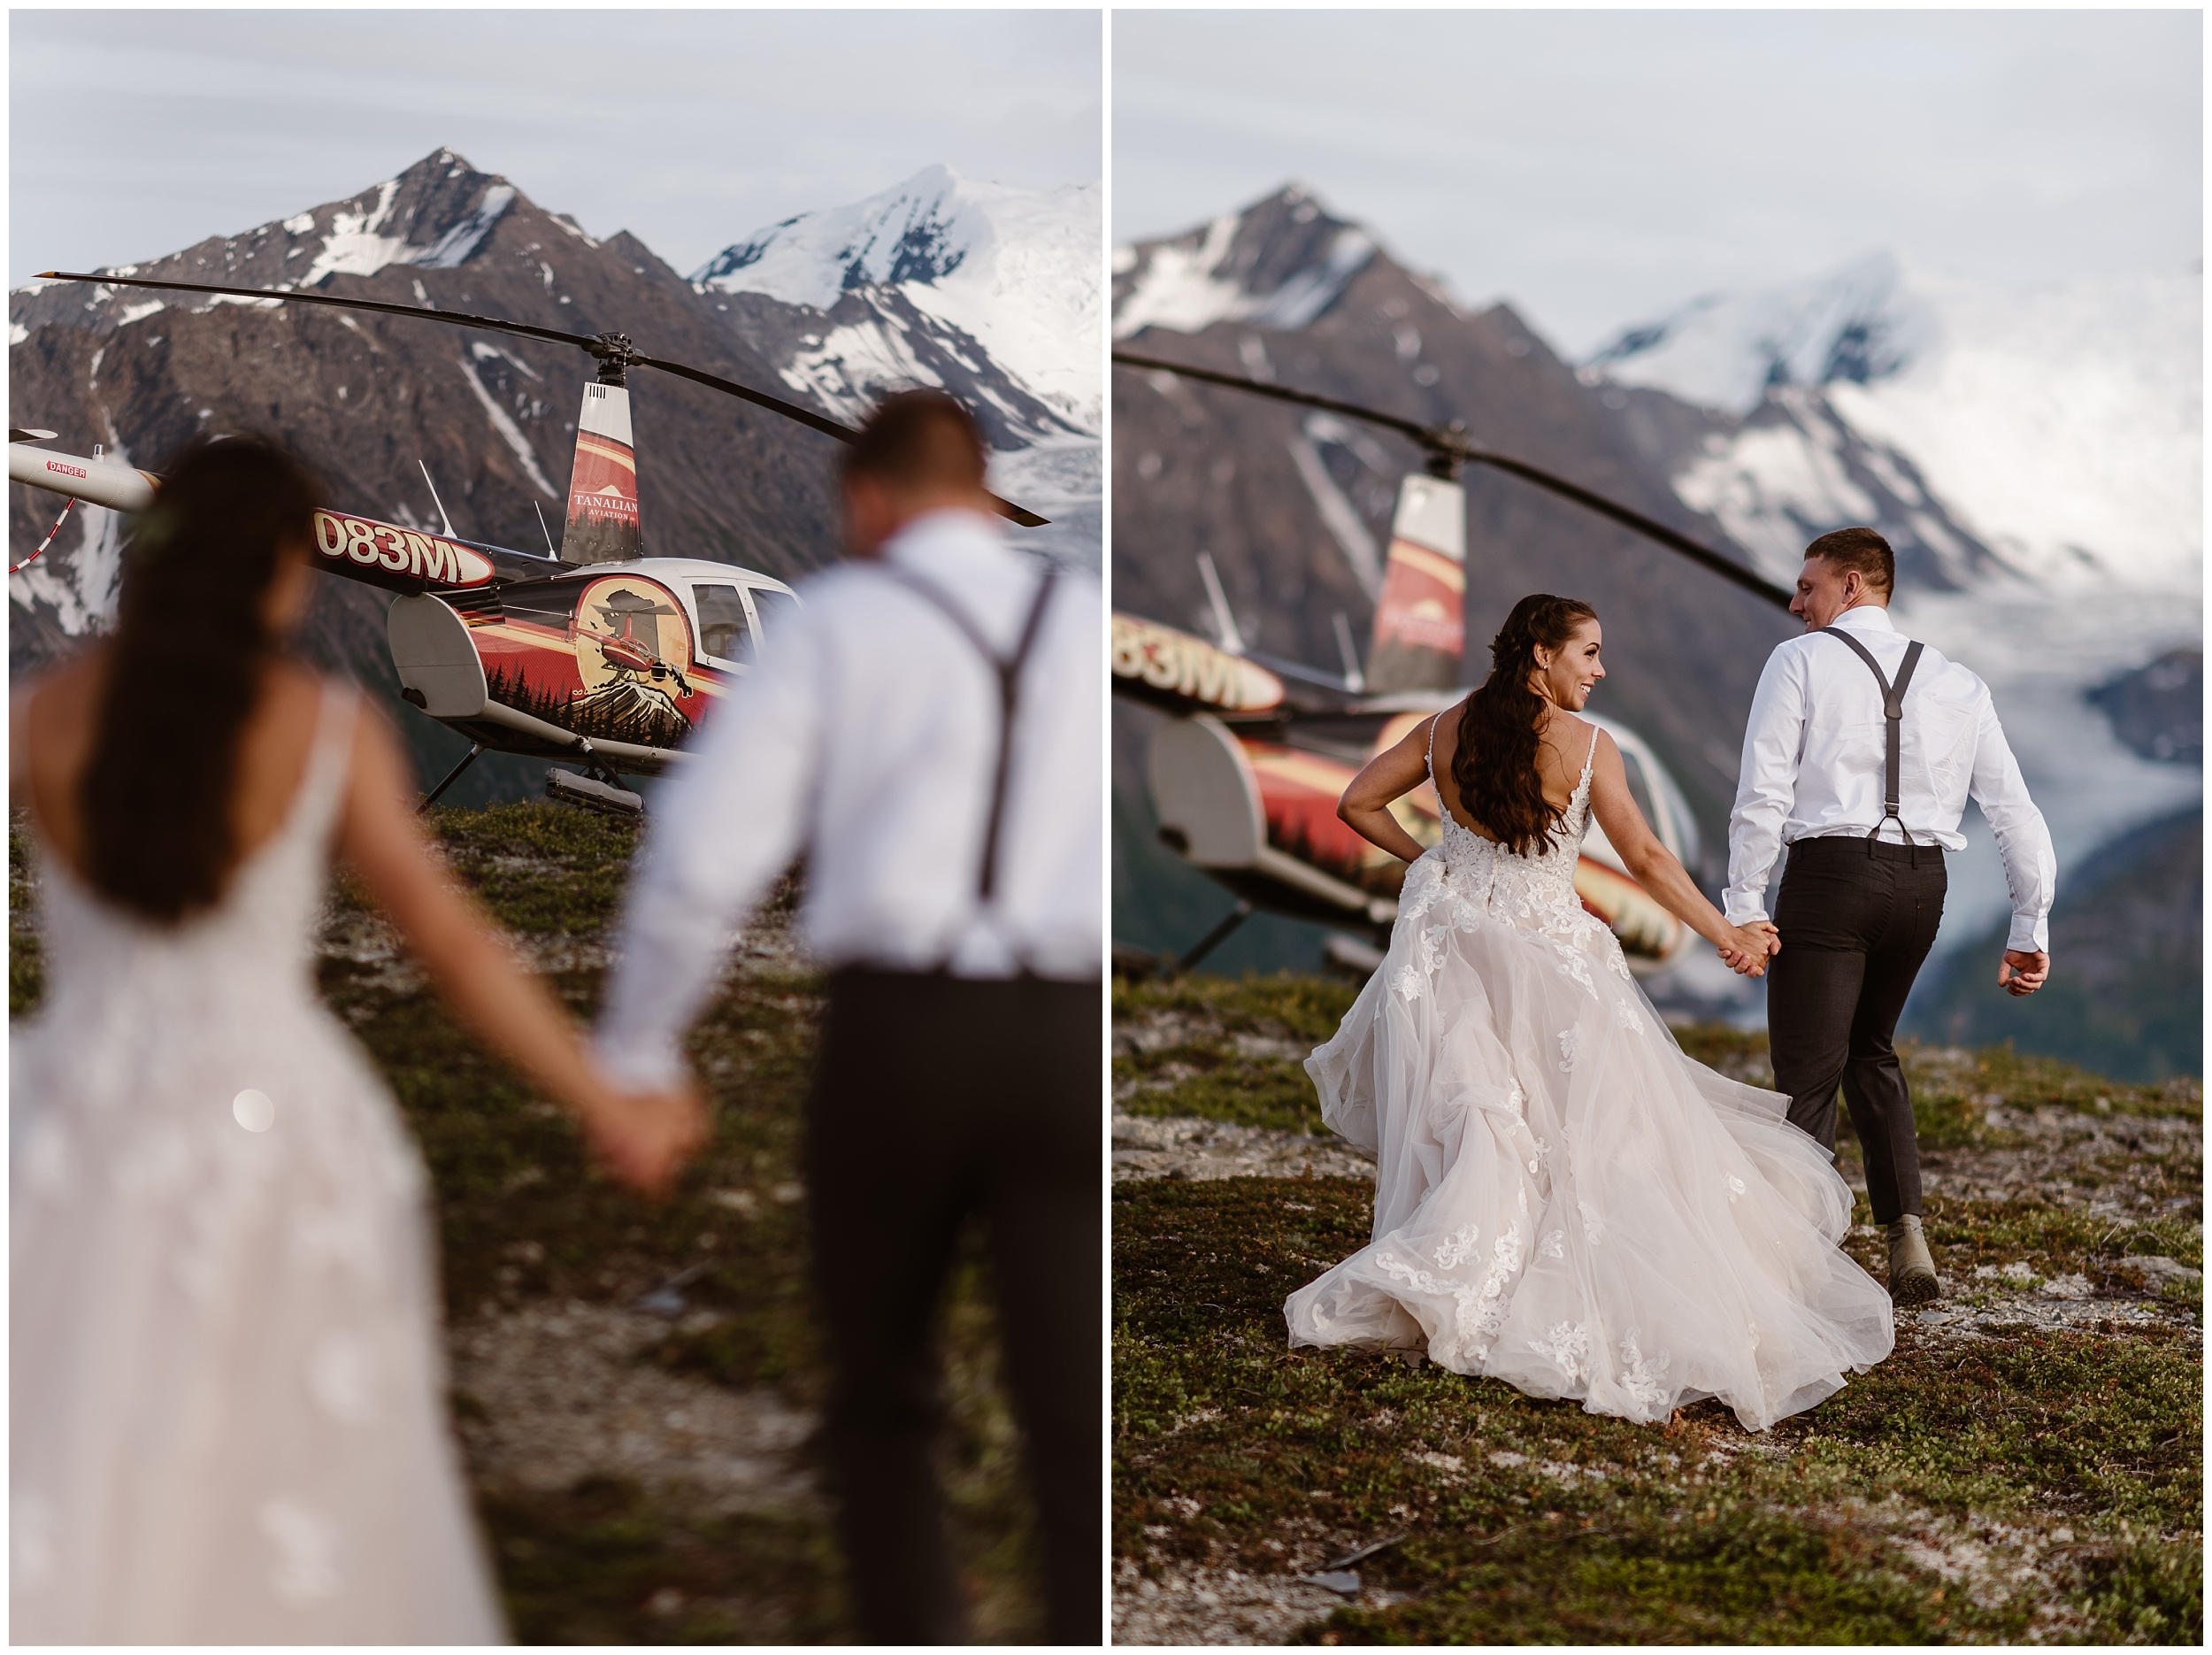 In these side-by-side elopement pictures, Jordyn and Connor, the bride and groom, take hands and walk toward the helicopter that will take them to their next destination elopement location. In the photo on the left, the helicopter is in focus beyond the blurred figures of Jordyn and Connor. In the photo on the right, Jordyn and Connor, still holding hands, are in focus as they walk closer to the helicopter.